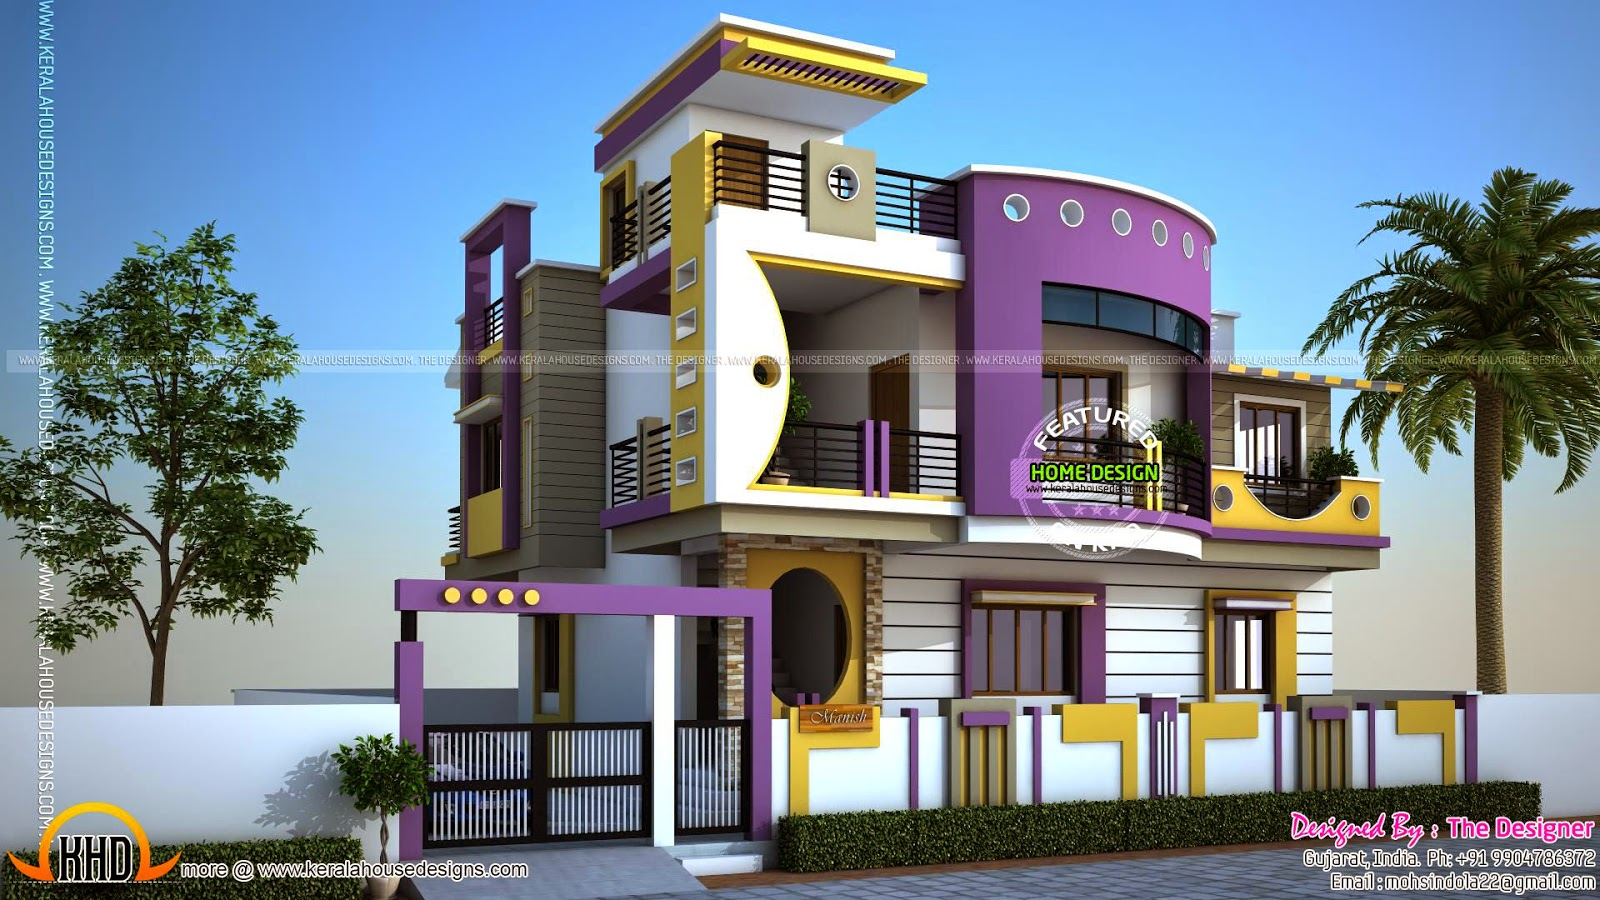 House exterior designs in contemporary style kerala home for Home design exterior india